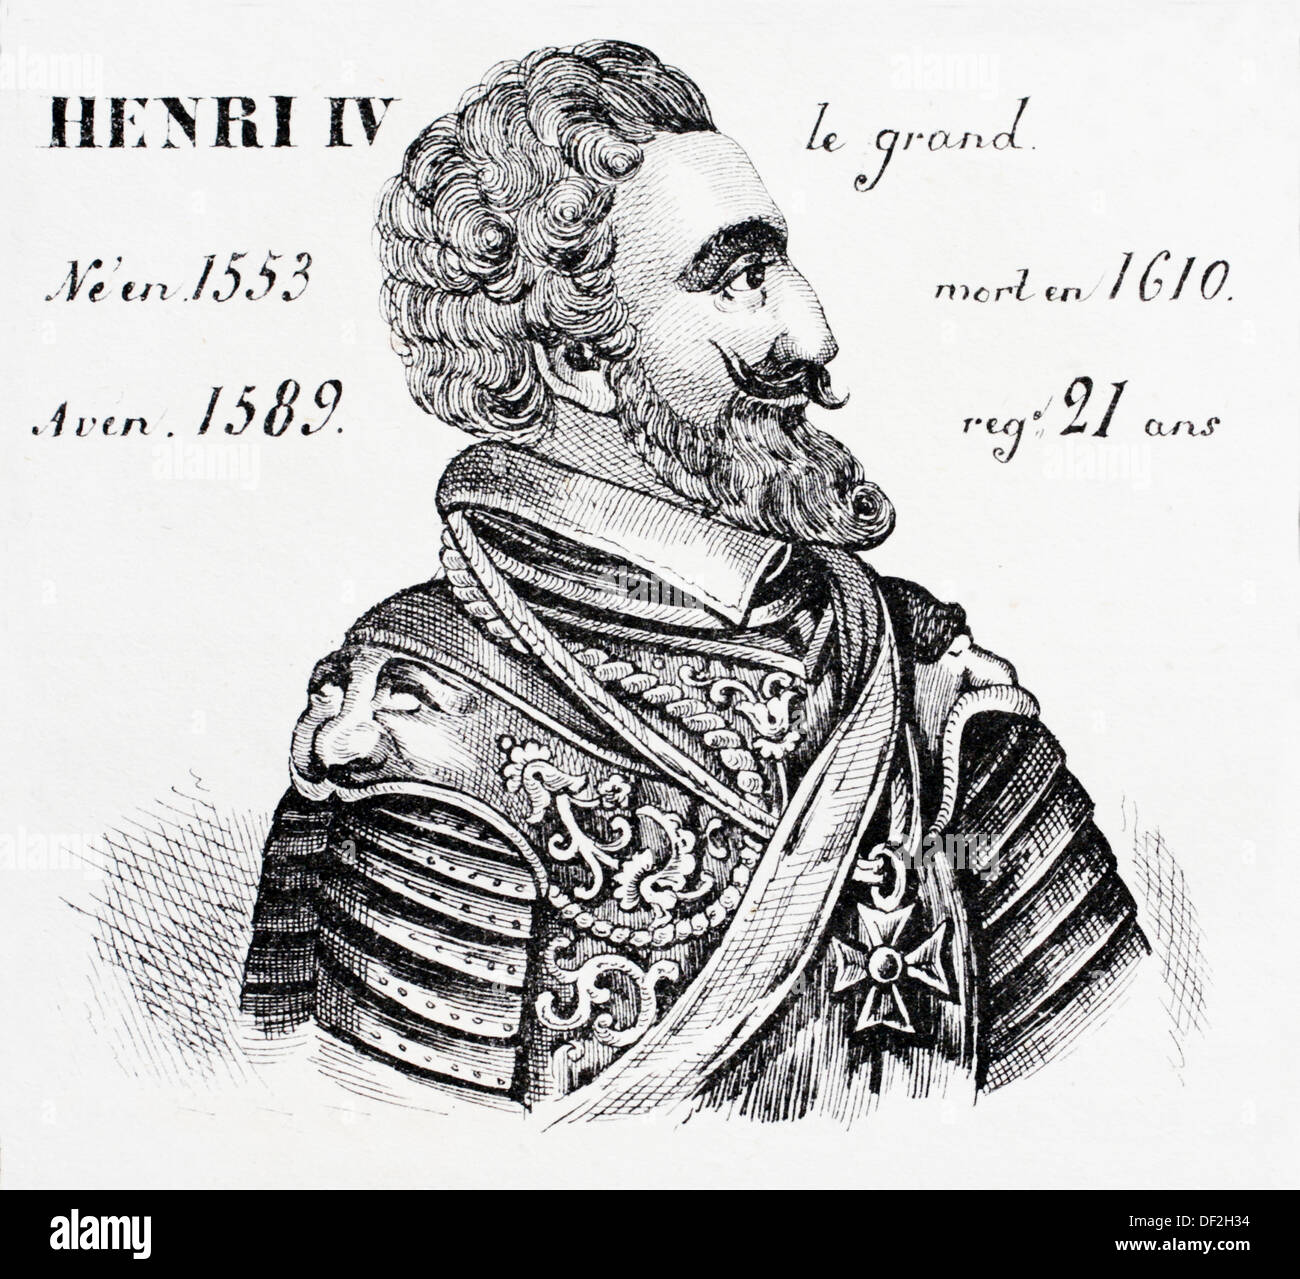 Henri IV, le grand, king of France from 1589 to 1610. History of France, by  J.Henry (Paris, 1842) Stock Photo